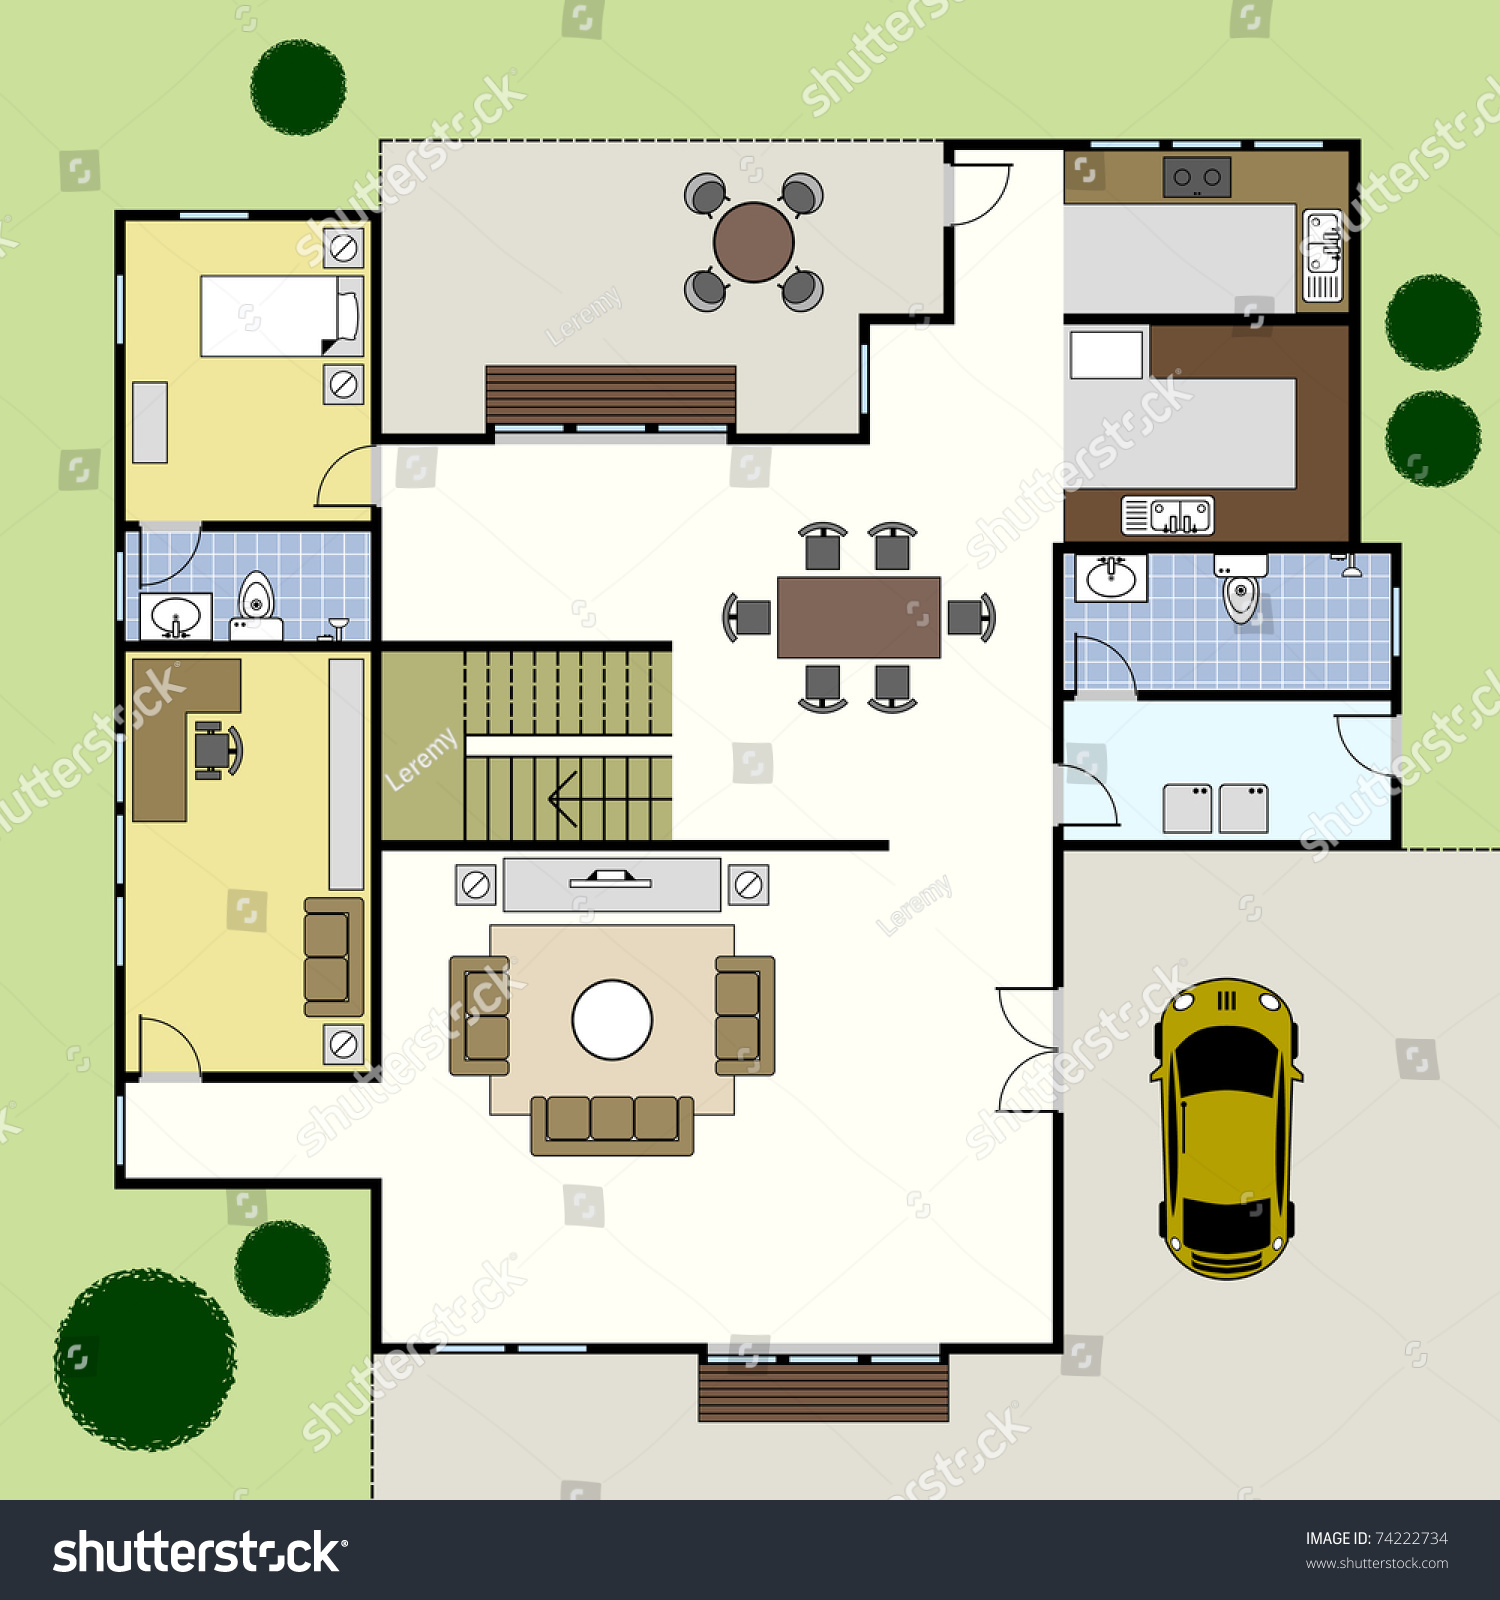 Plan For House floor plan for small 1200 sf house with 3 bedrooms and 2 bathrooms Ground Floor Plan Floorplan House Home Building Architecture Blueprint Layout